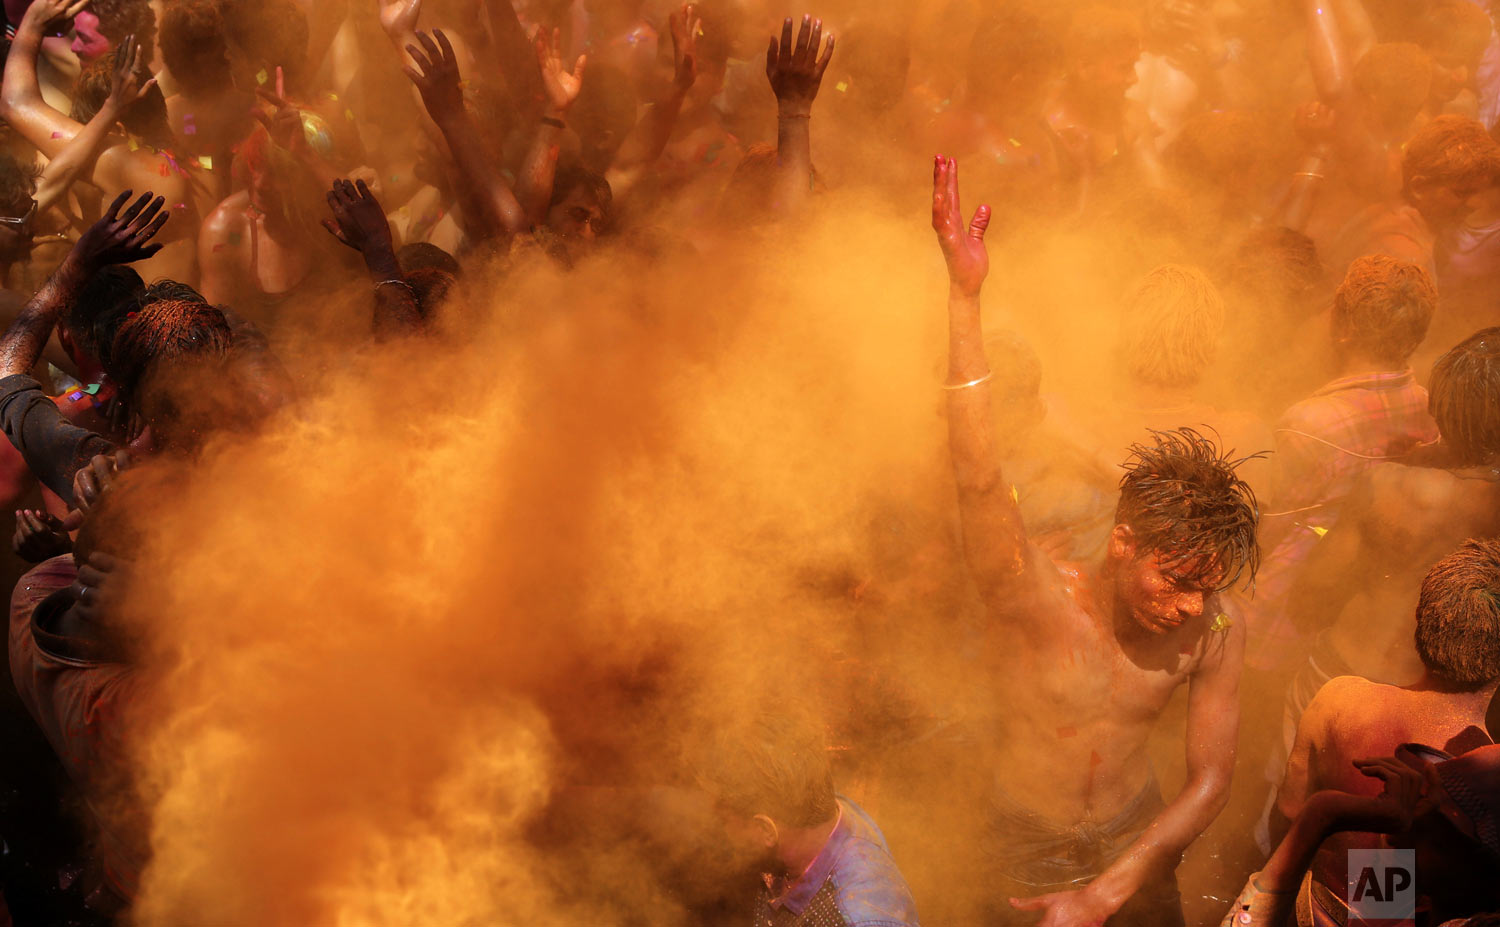 Revelers dance as colored powders are sprayed during celebrations for the Hindu festival Holi in Prayagraj, India, on Friday, March 22, 2019. The riotous annual celebration of color, marks the end of winter and the arrival of spring. People armed with water balloons, colored water and powder in multiple hues played Holi by smearing each other's faces with color. (AP Photo/ Rajesh Kumar Singh)